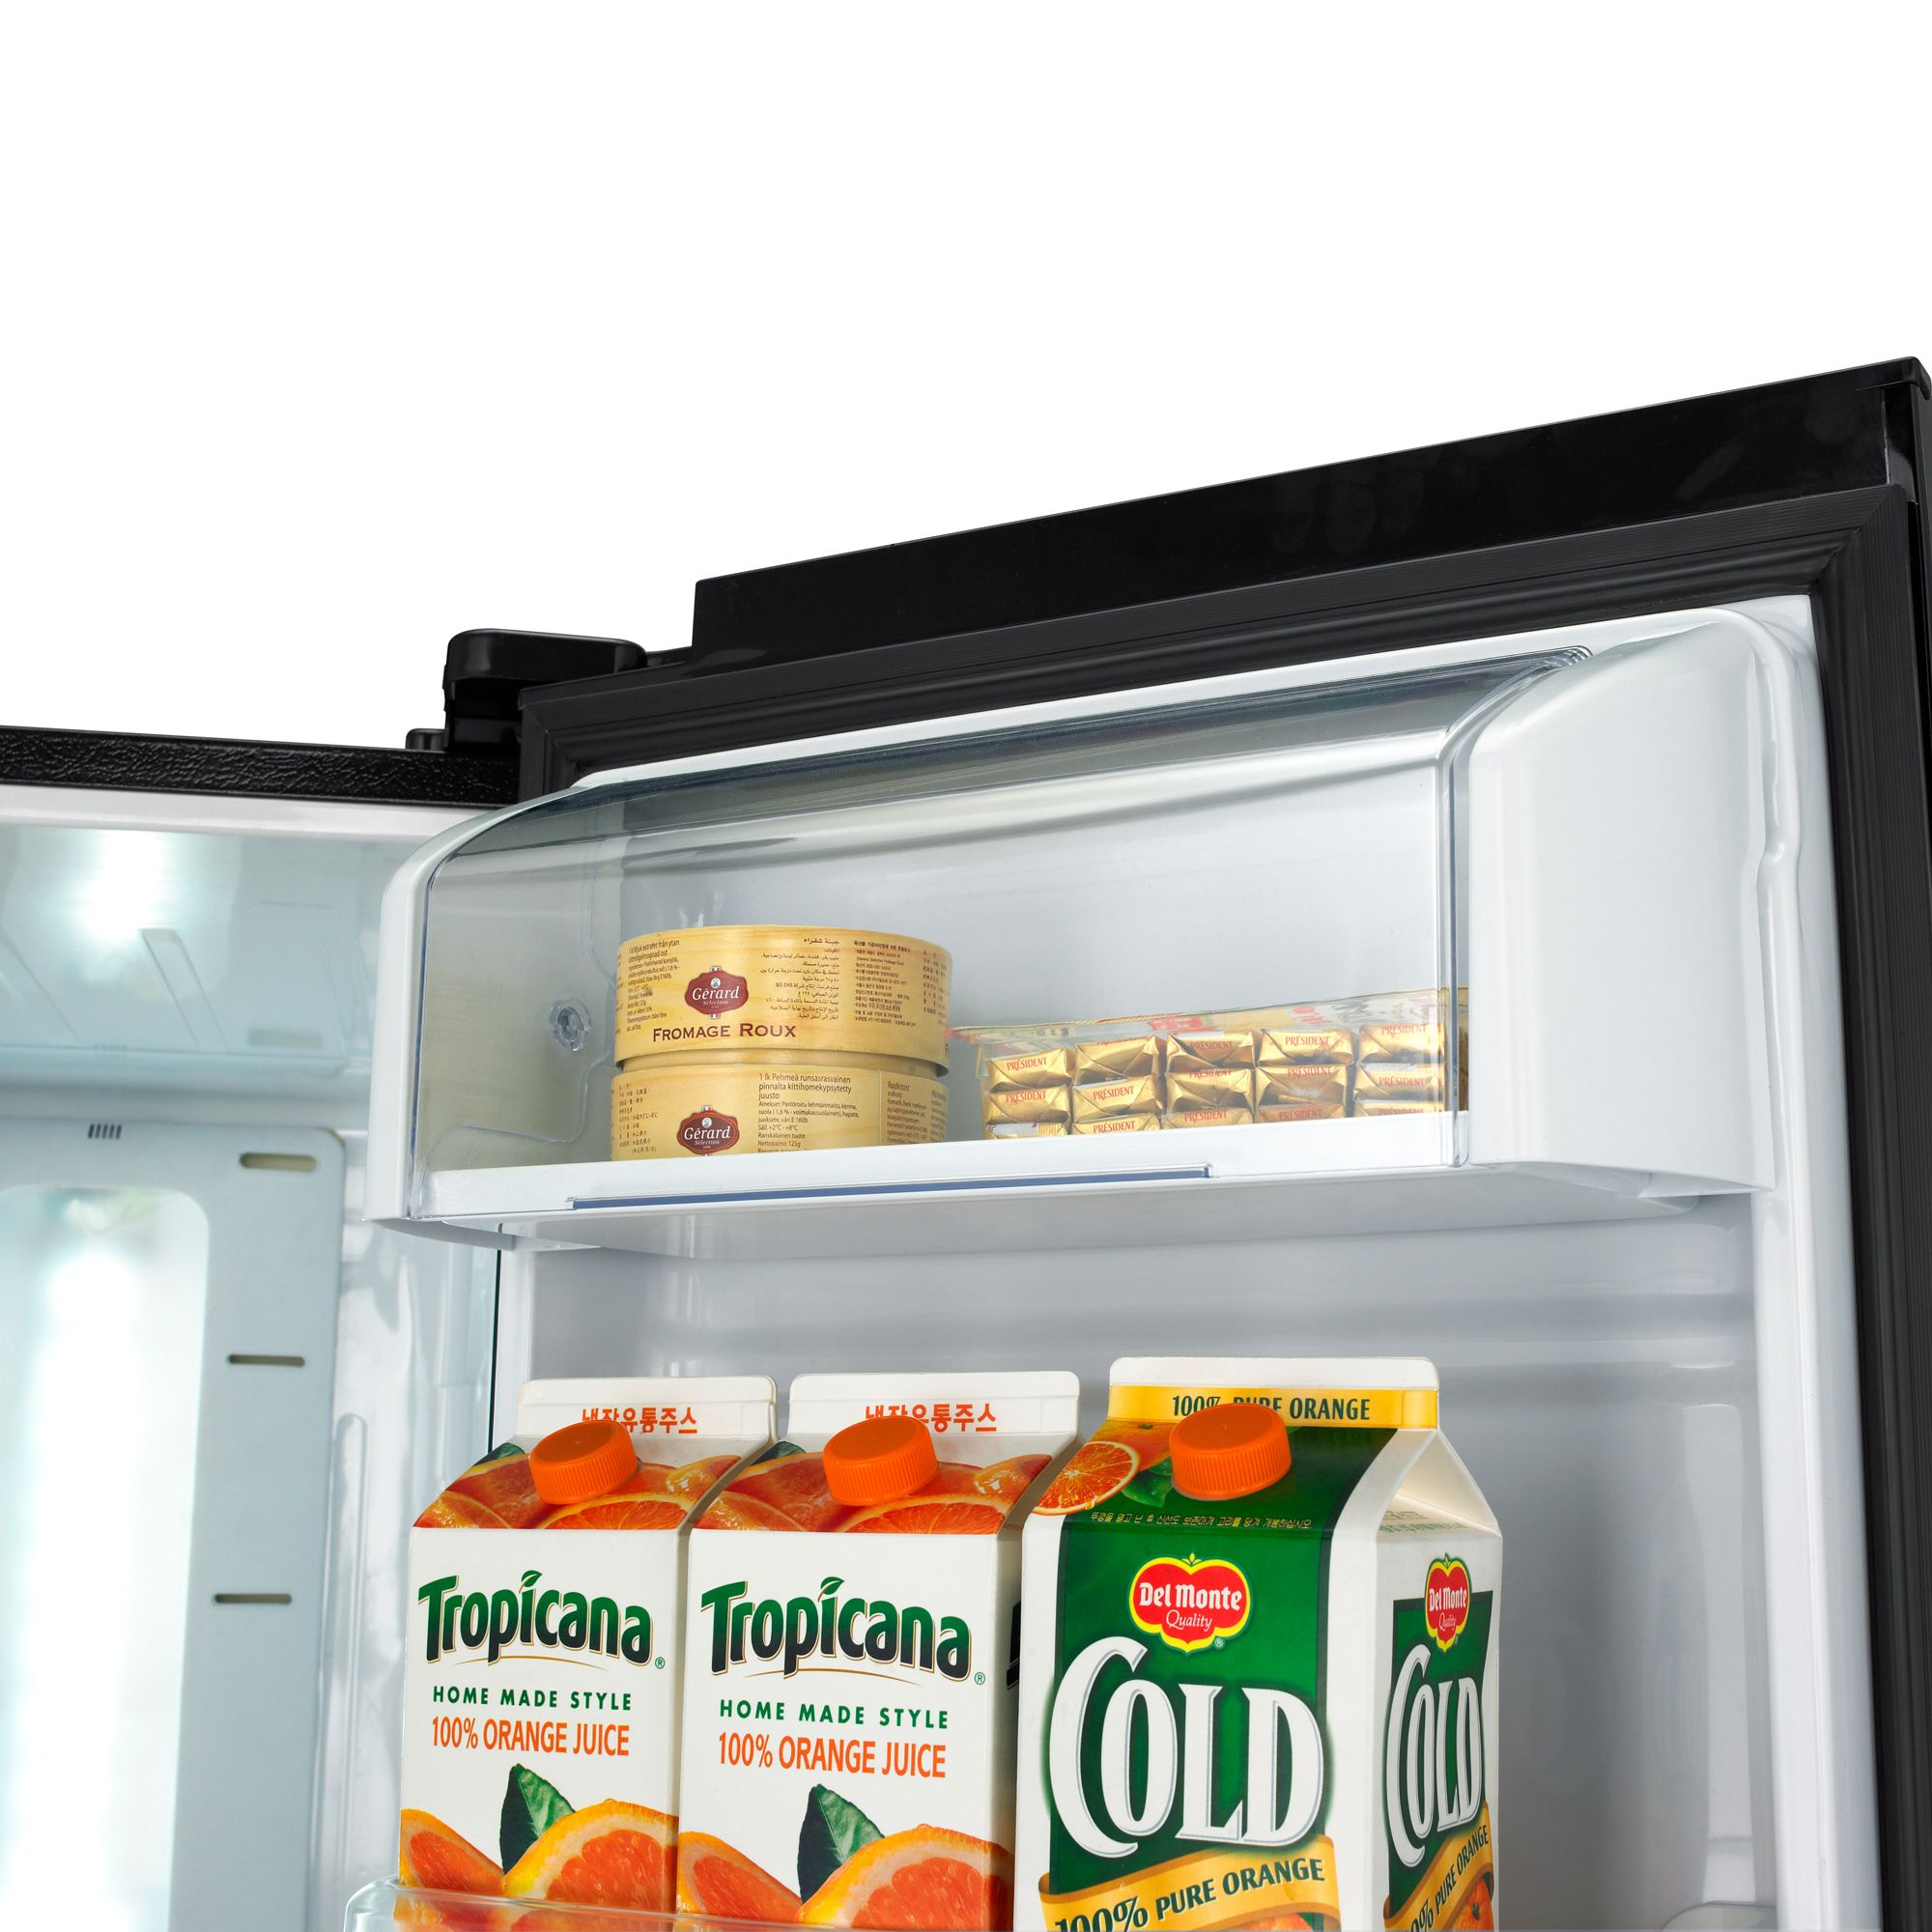 Samsung 26.0 cu. ft. Side-by-Side Refrigerator